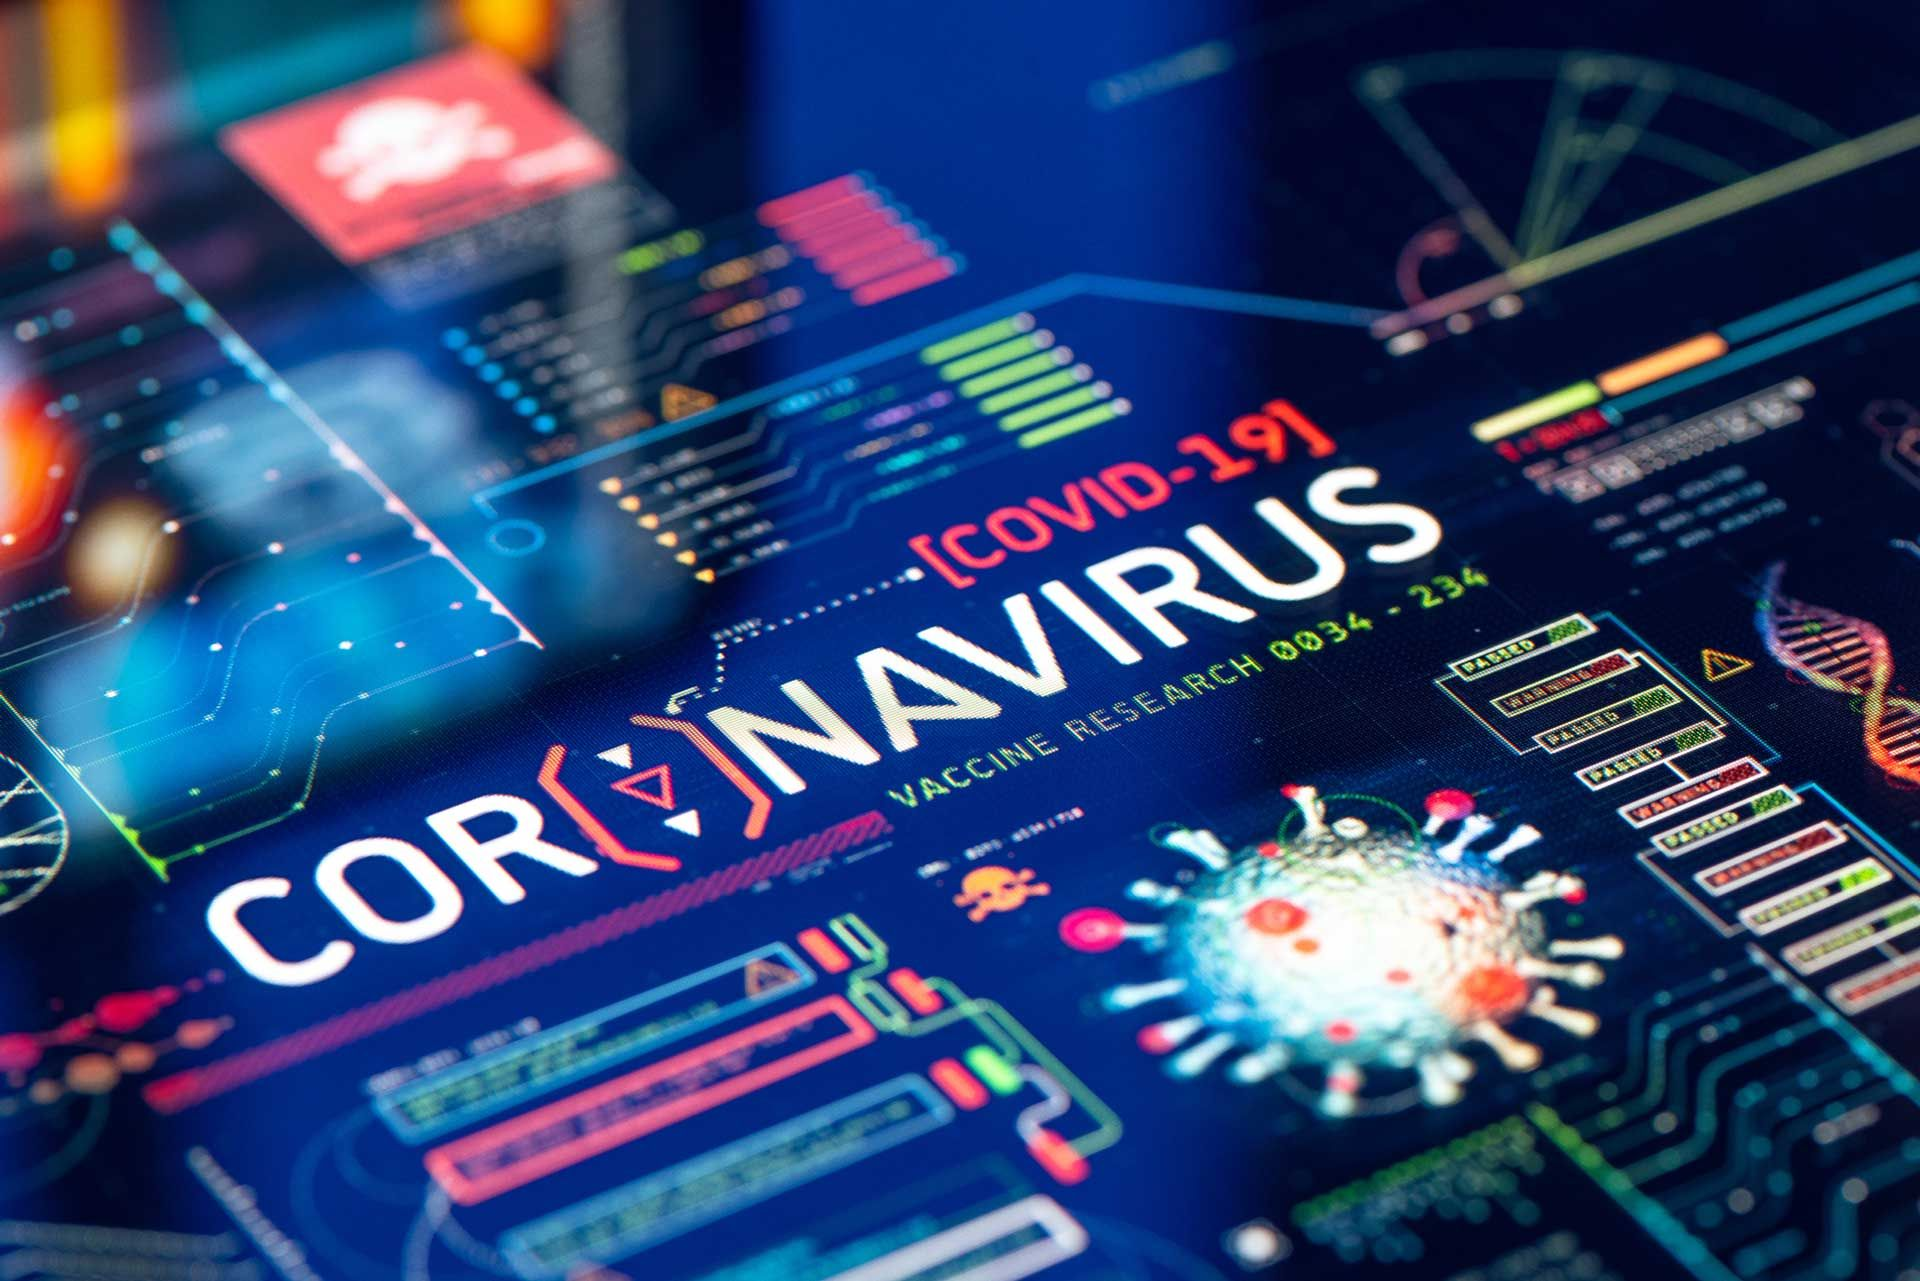 /how-is-covid-19s-second-wave-impacting-cybersecurity-ix123wpu feature image